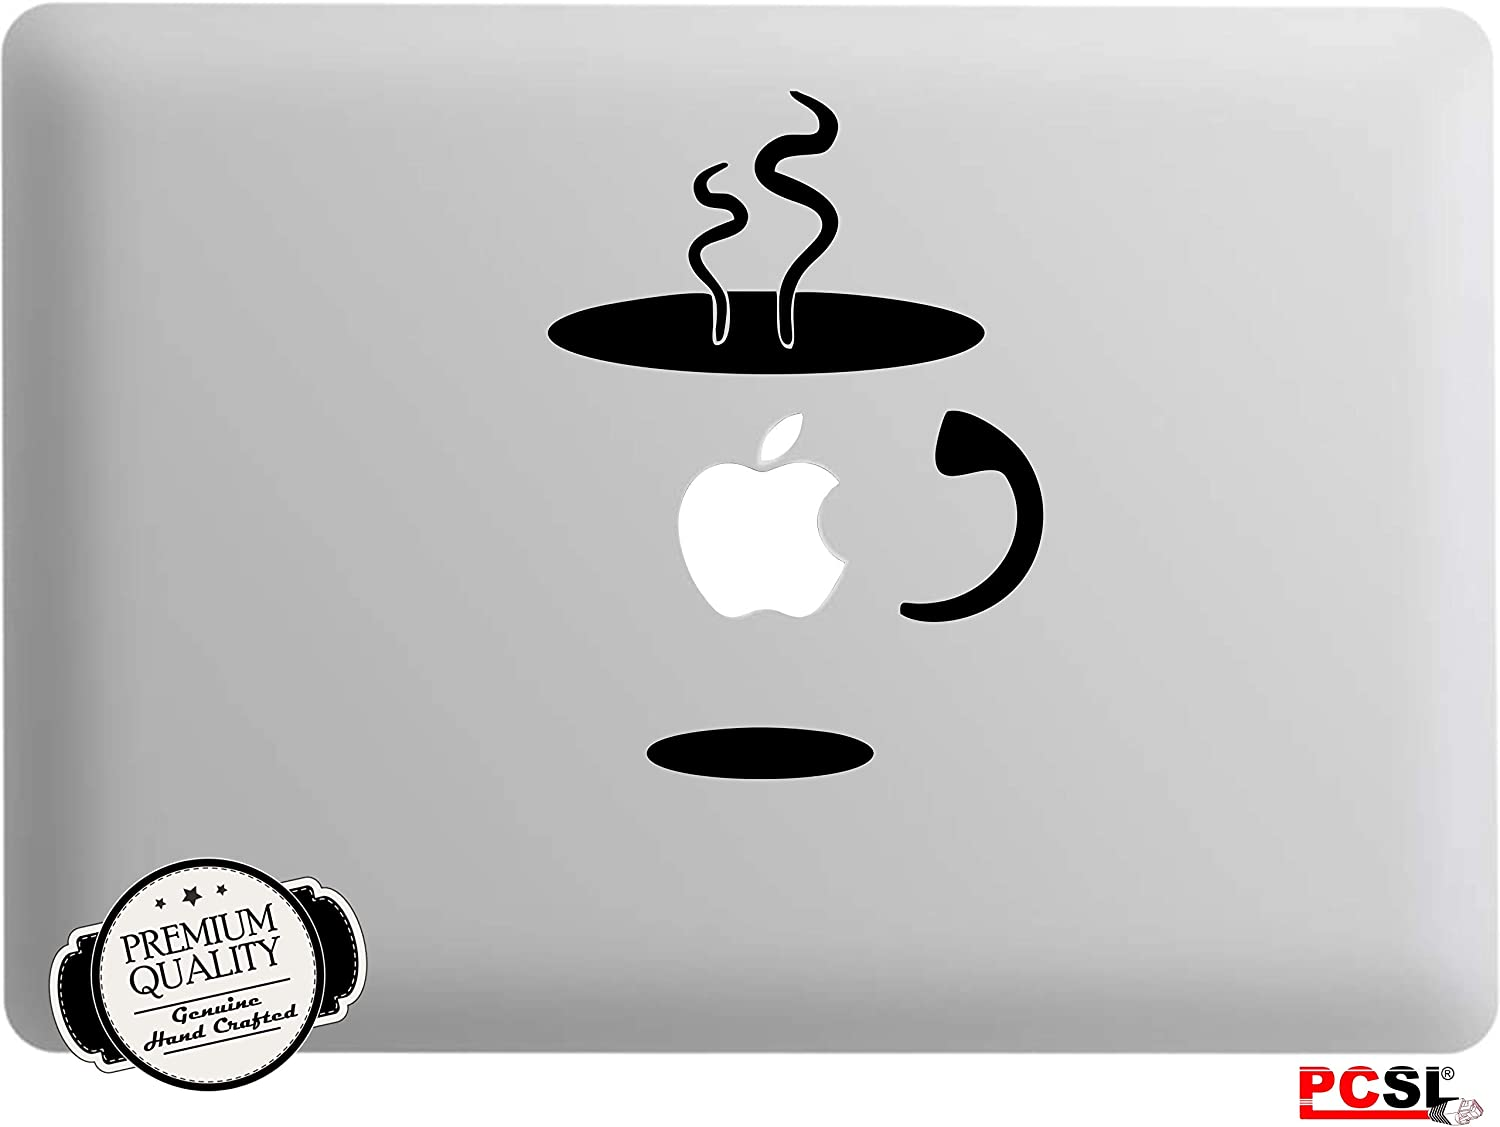 Ideal for Apple Macbook Pro Air Mac//Unibody and Other Notebooks Premium Quality Vinyl Decal Skin Design Art Sticker 002 - Homer Simpson